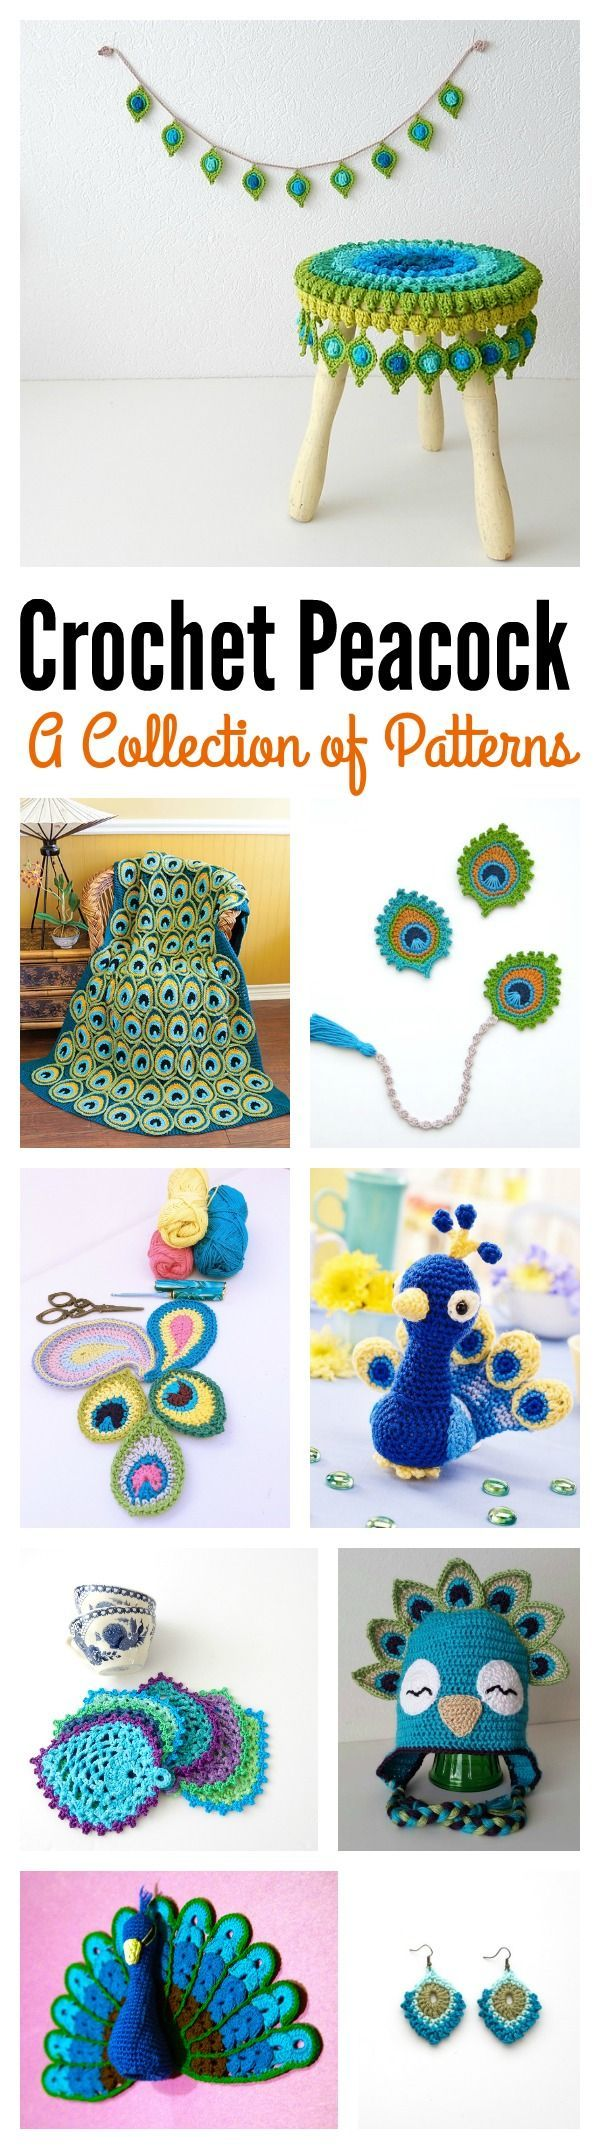 A Collection of Peacock Crochet Patterns | Bright, bold and beautiful